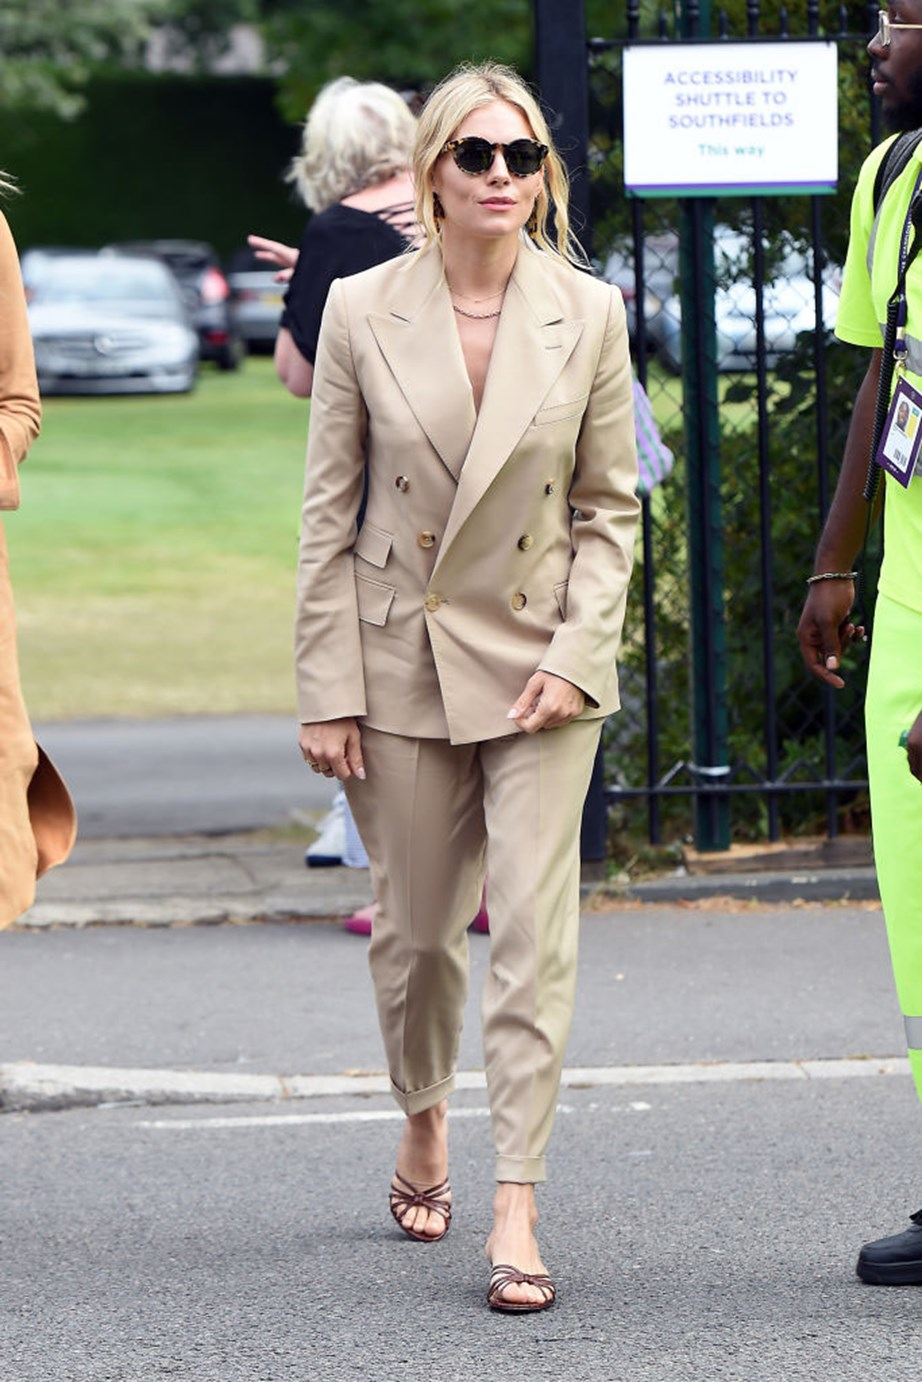 """***Sienna Miller***<br><br> """"Like everyone else, Sienna Miller got the memo that if you don't have round tortoiseshell sunnies, you're not getting into Wimbledon this year. But the double-breasted suit is a surprise ace."""" - Tom Lazarus, copy director.<br><br> """"Sienna Miller looks great in a tan suit! So effortless."""" - Grace O'Neill, fashion features director."""